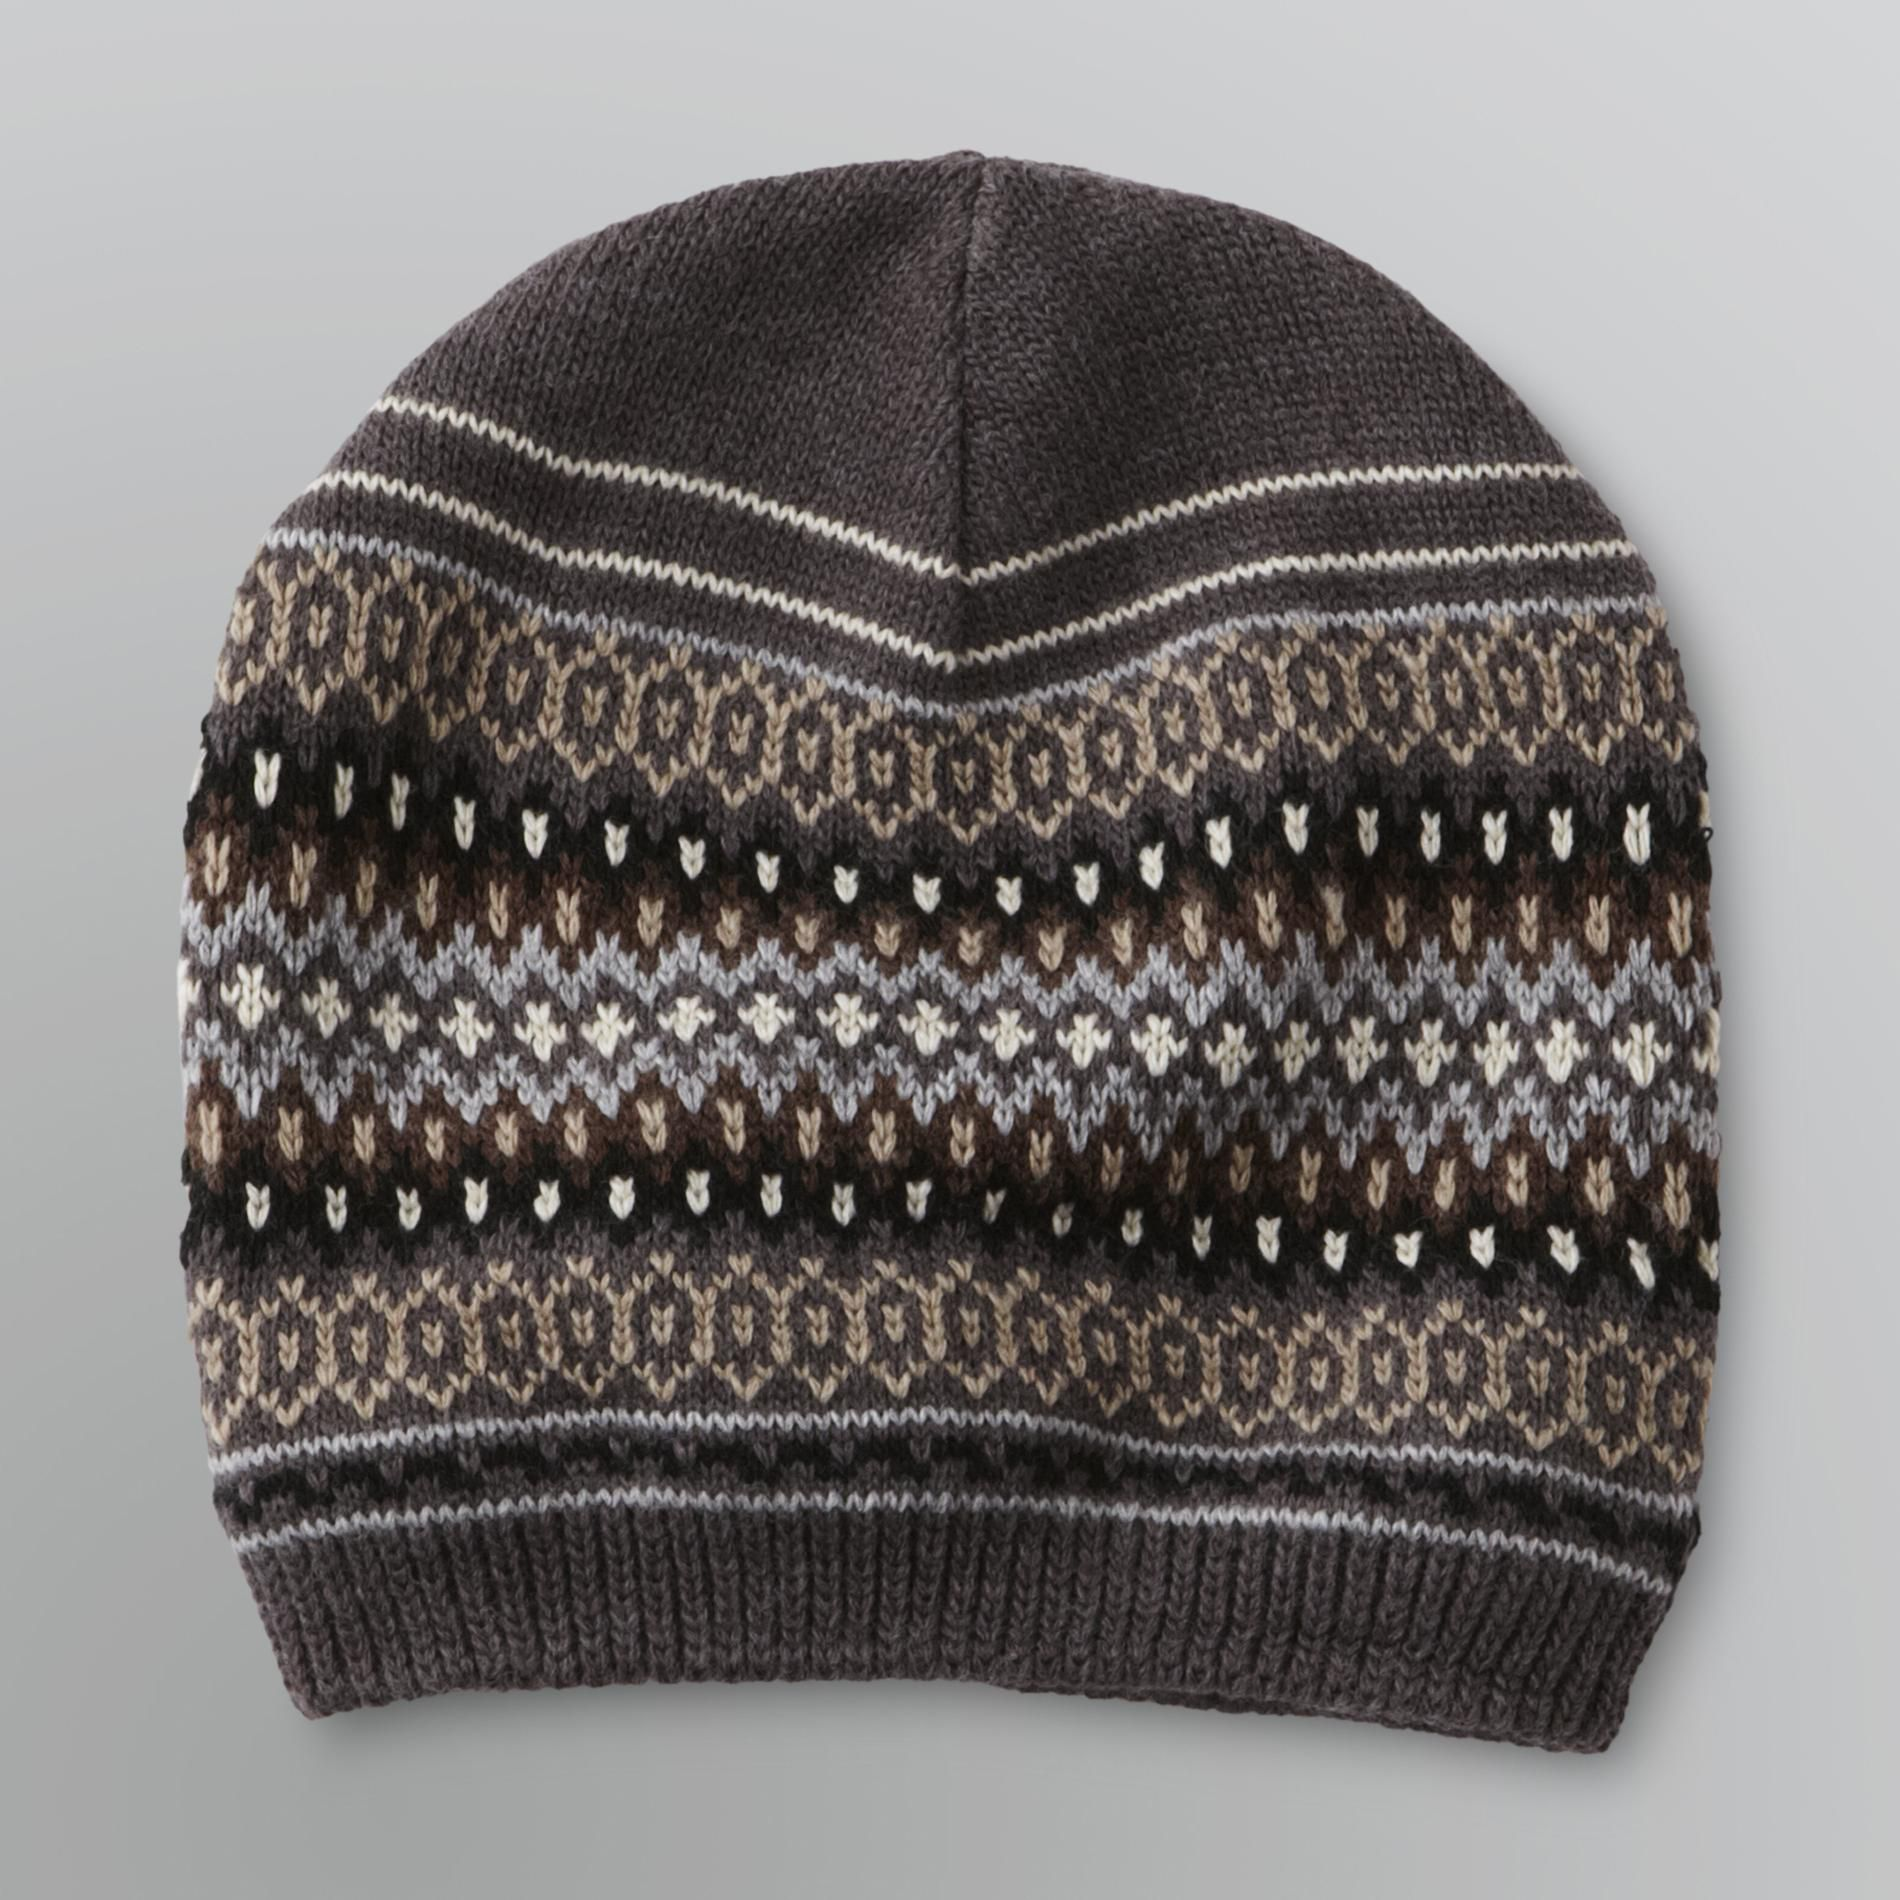 Men's Fleece Lined Beanie Hat - Fair Isle                                                                                        at mygofer.com